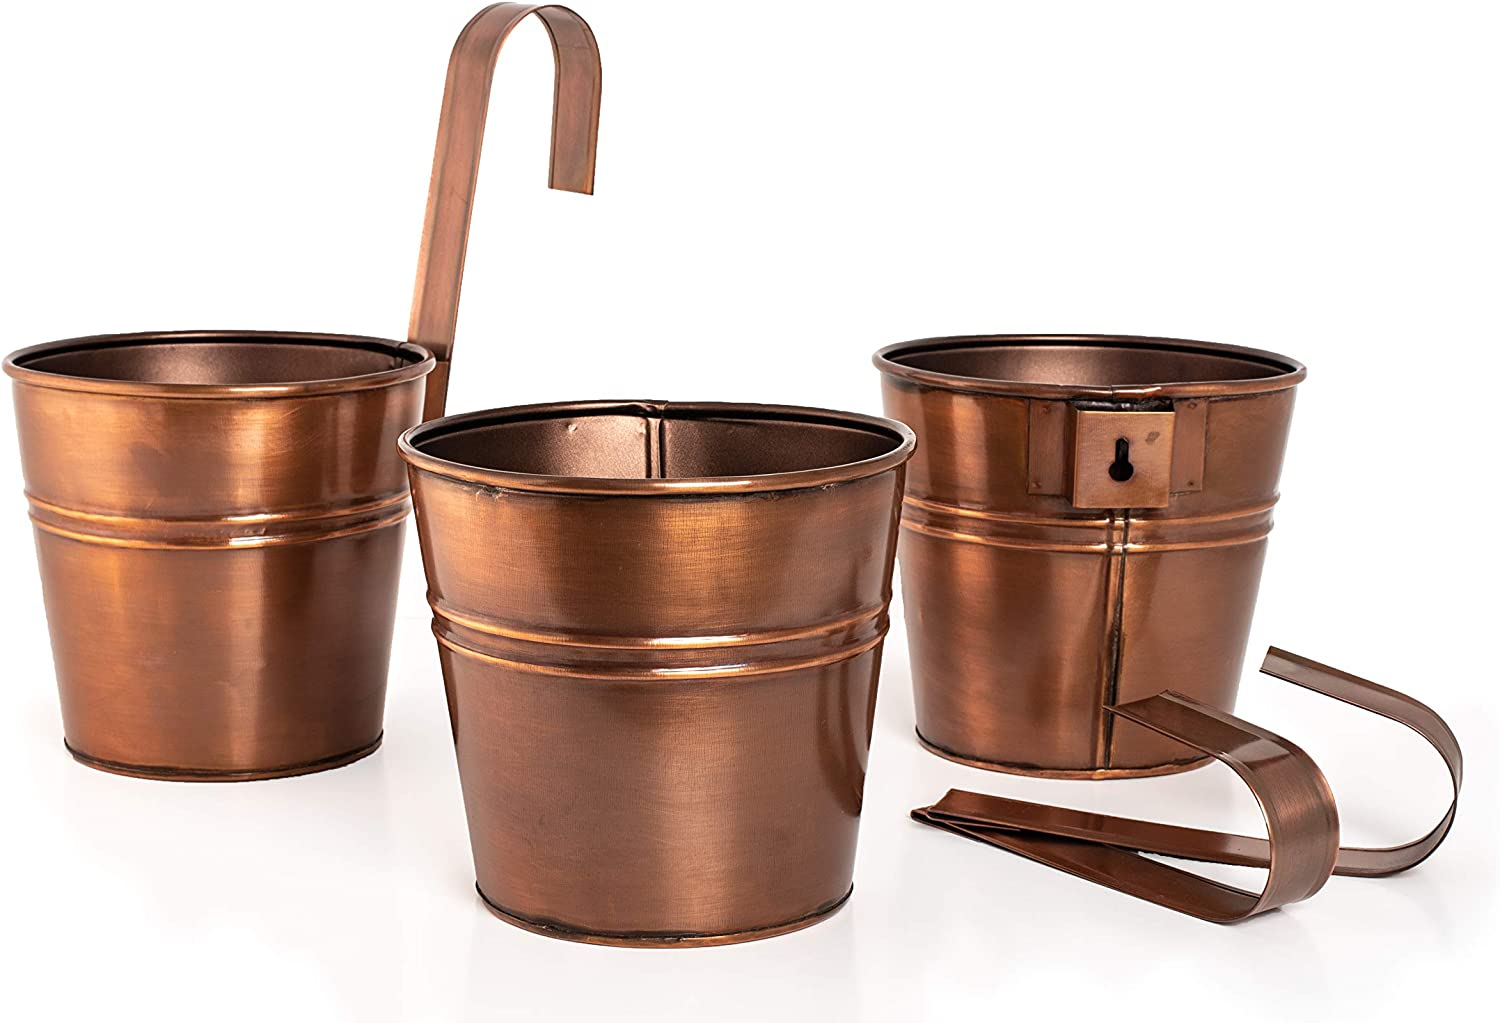 Hanging Metal Flower Pots/Planters/Buckets in Copper Finish for Plants, Herbs, Succulents. Use Indoor & Outdoor. Set of 3. Detachable Hook for Balcony, Railing & Fence. Screw Point for Wall Hanging.